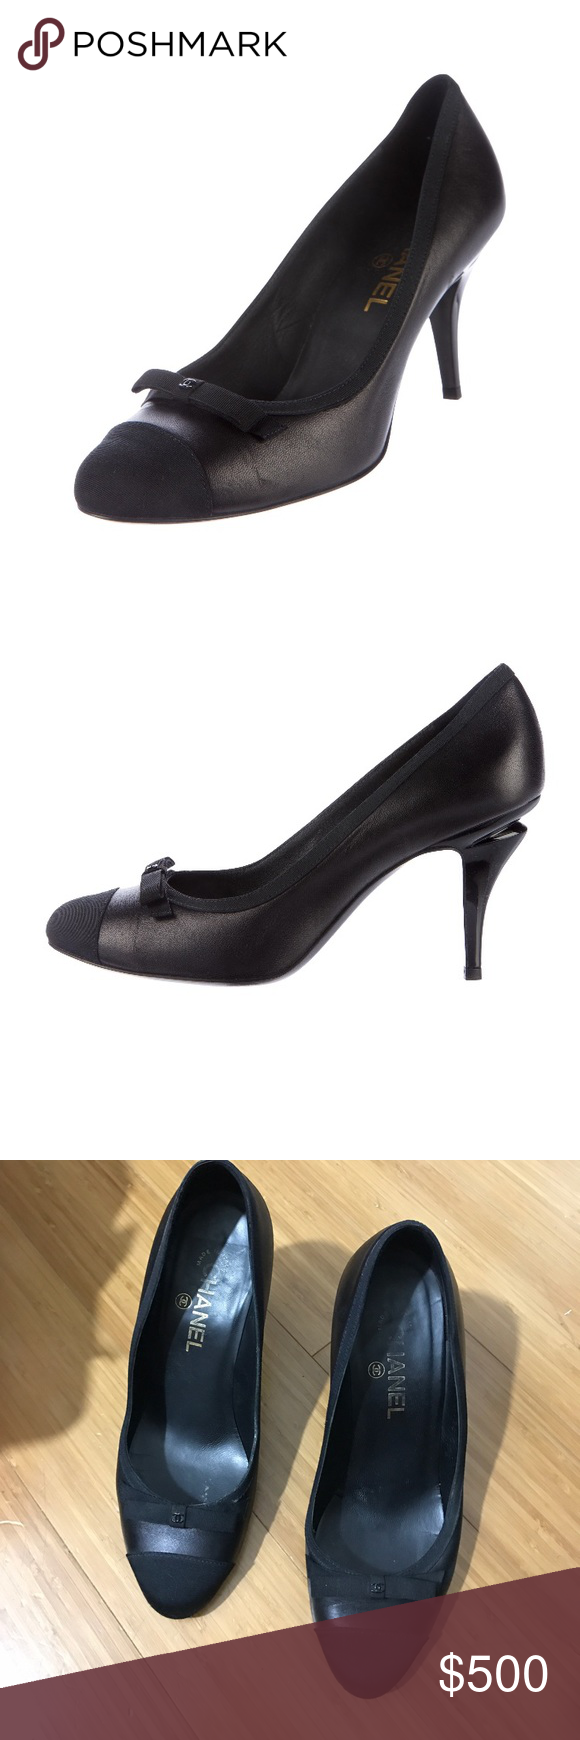 ff4bb5c731 Auth - CHANEL leather and grosgrain heels Black leather CHANEL pumps with  grosgrain trim